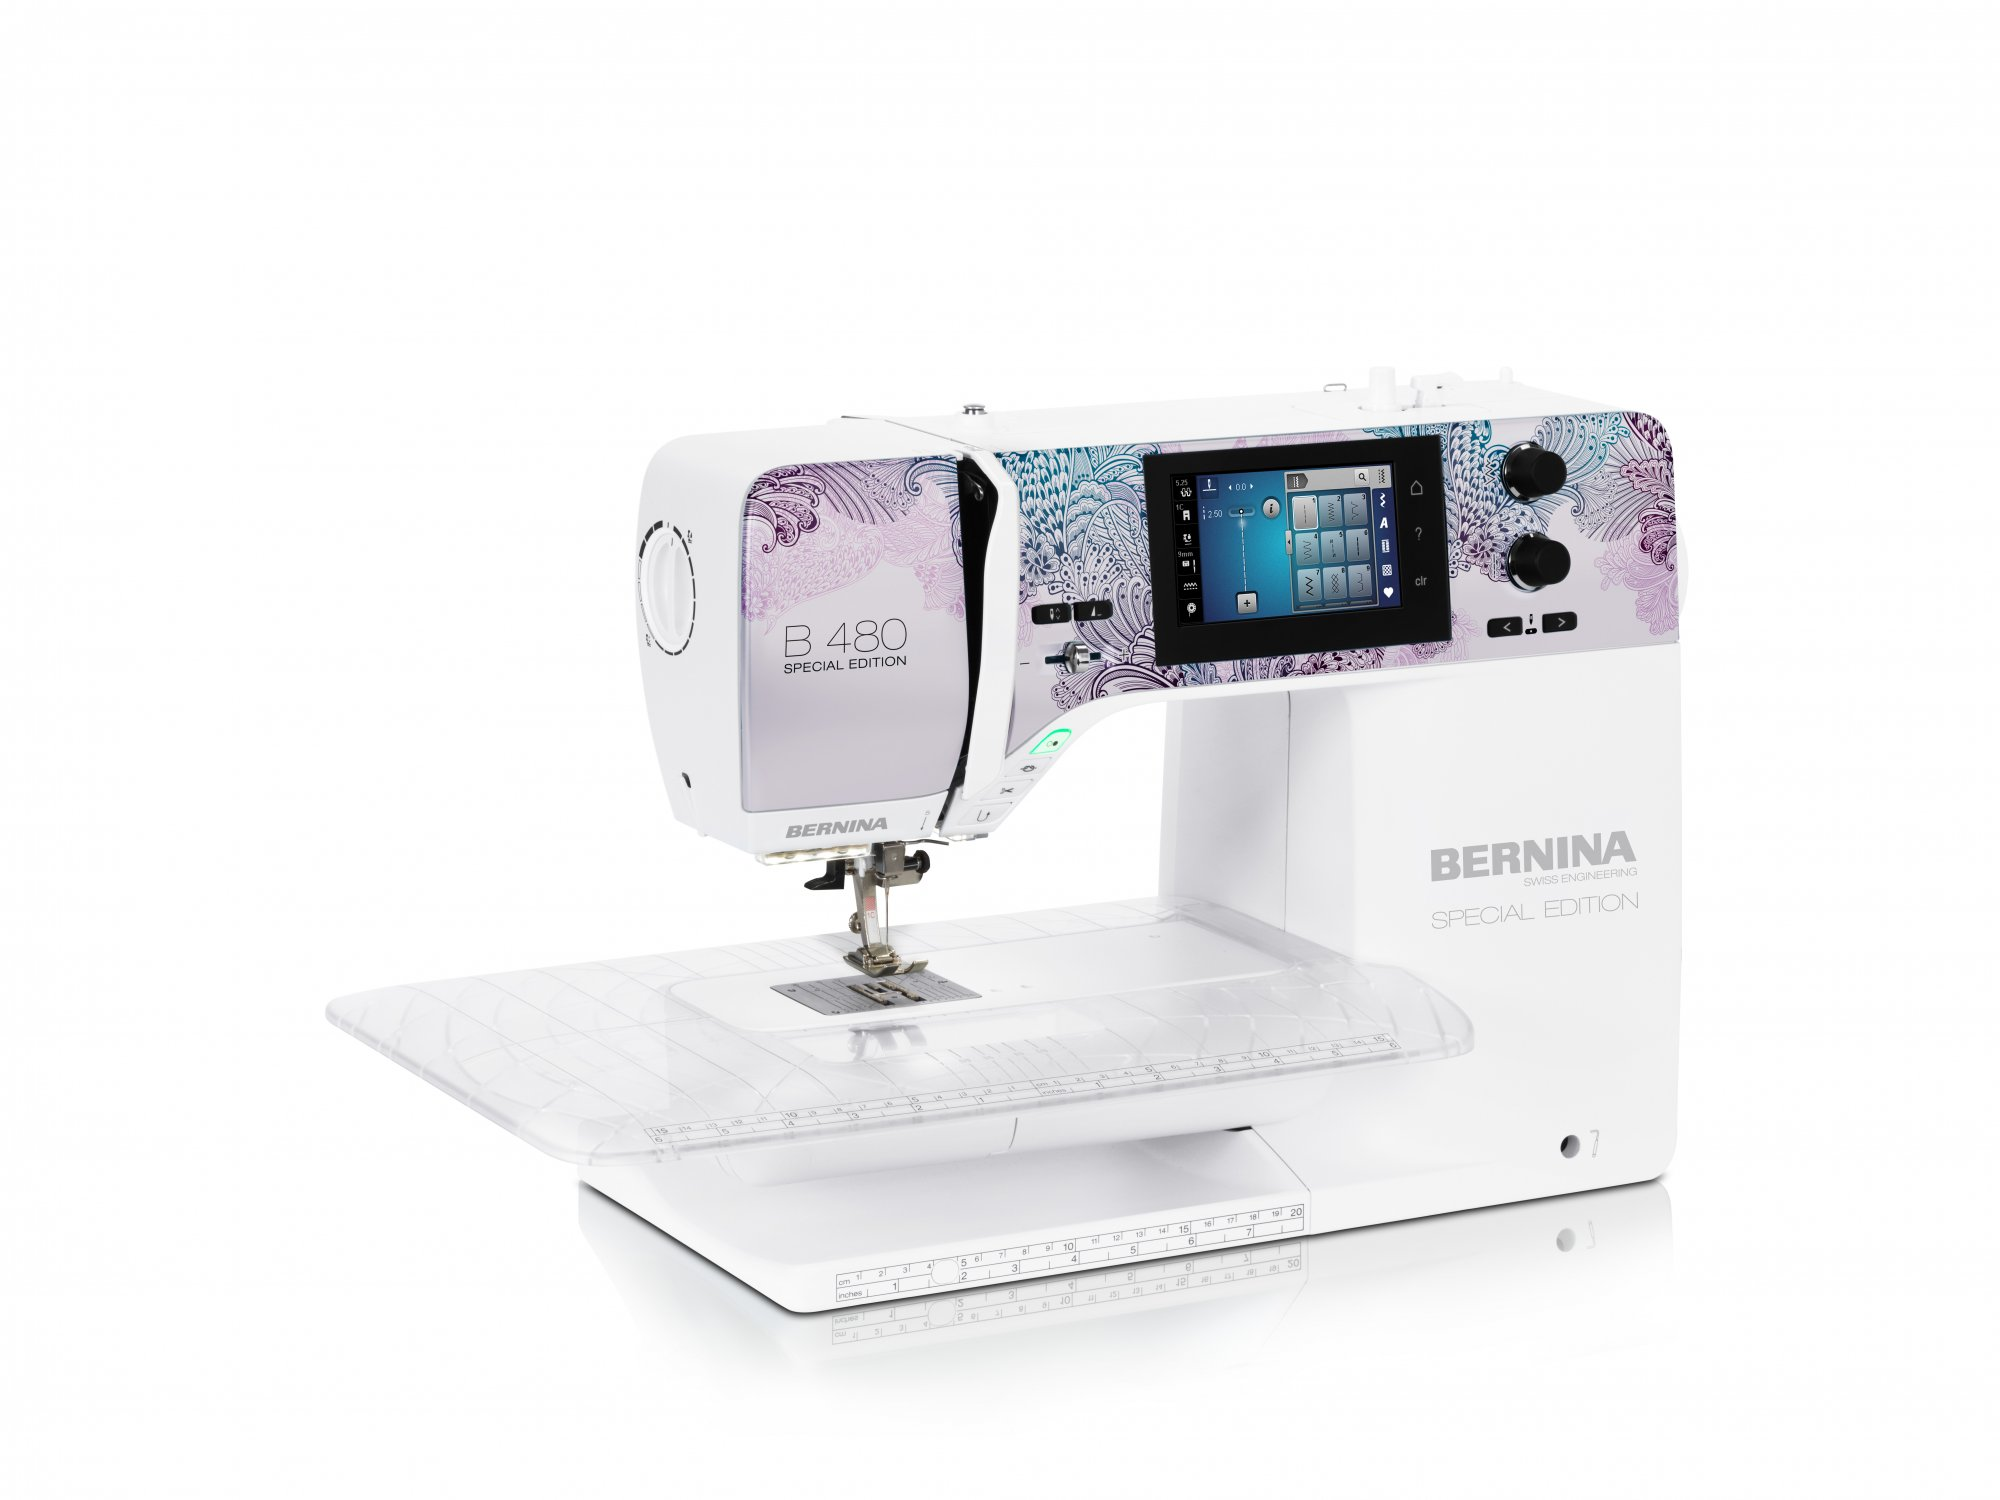 BERNINA 480 SPECIAL EDITION GWP